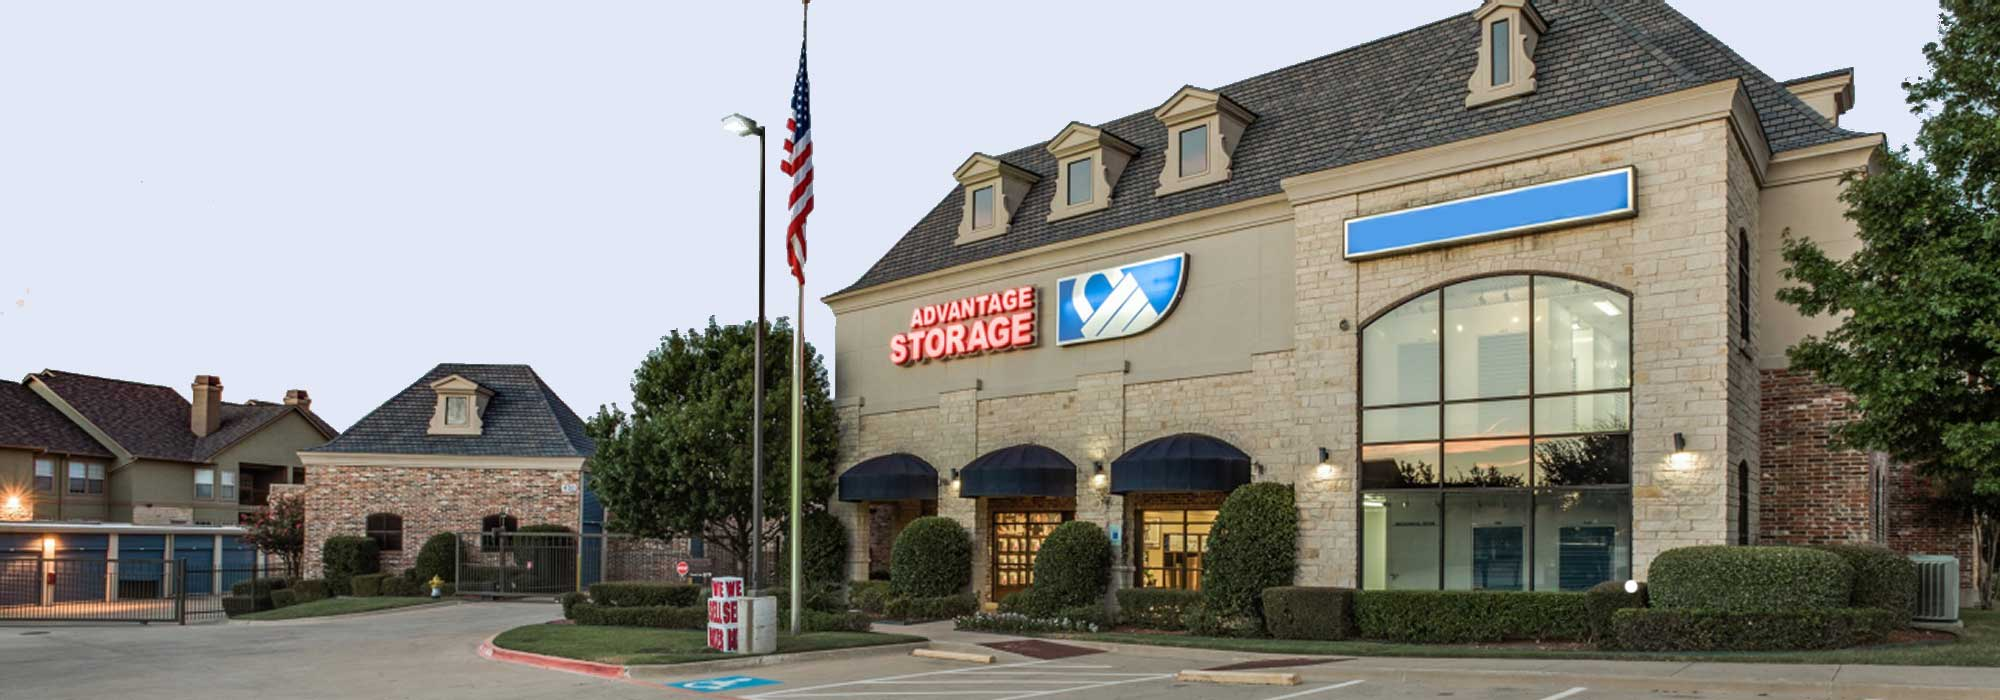 Self storage in Frisco TX